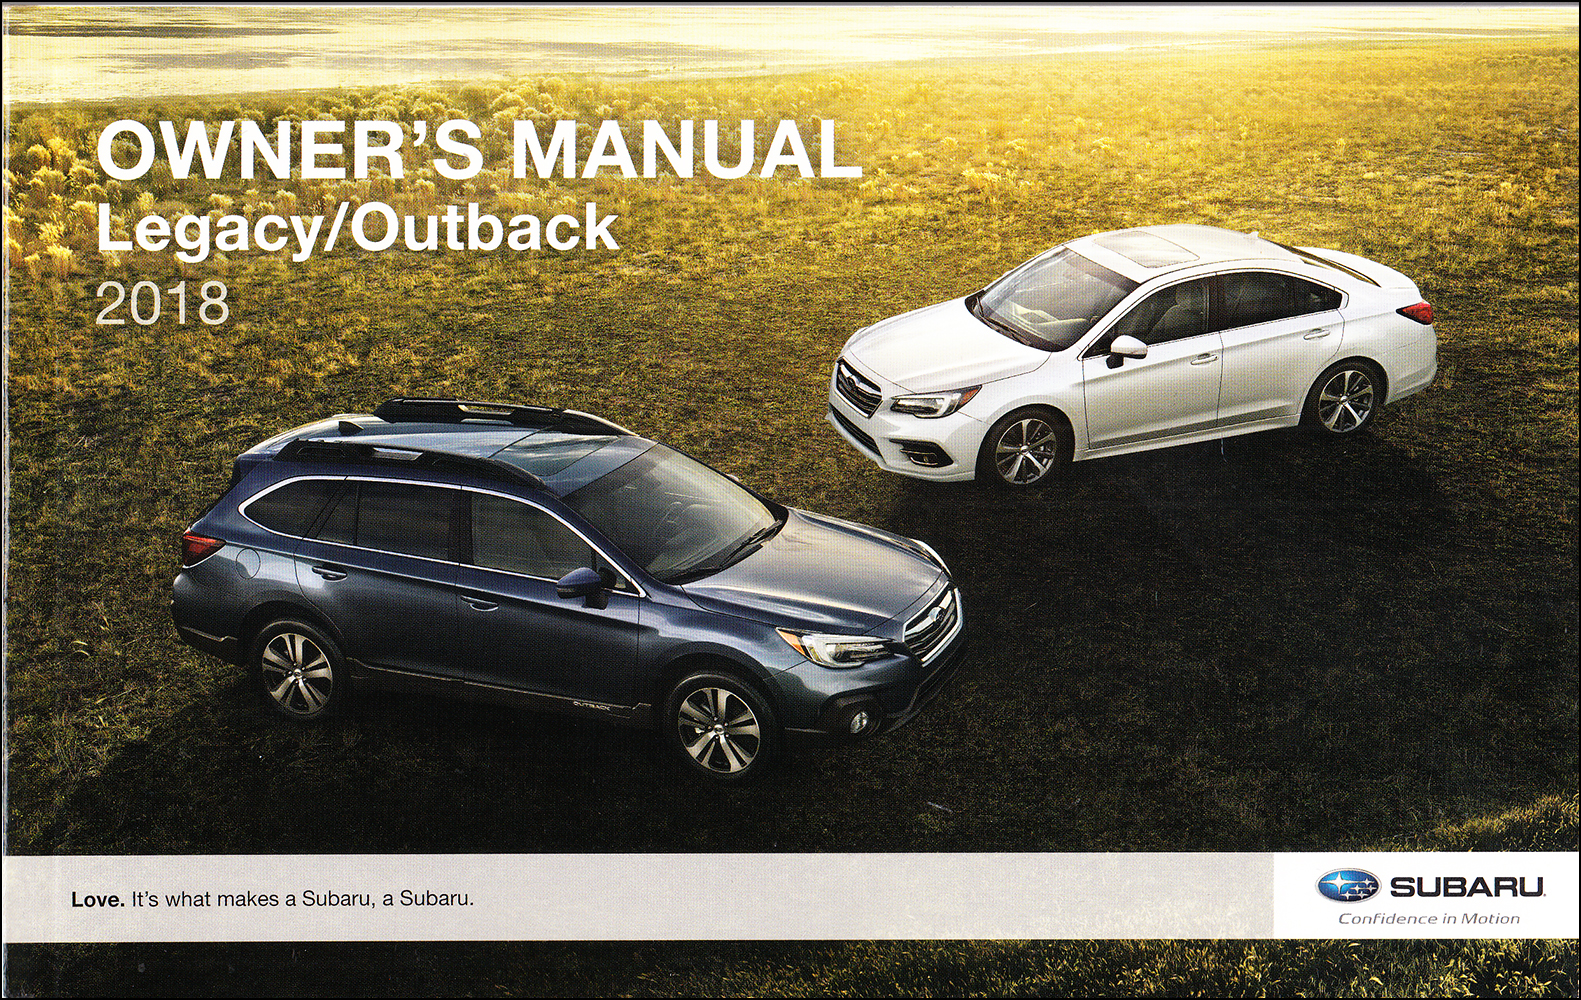 2018 Subaru Legacy and Outback Owner's Manual Original